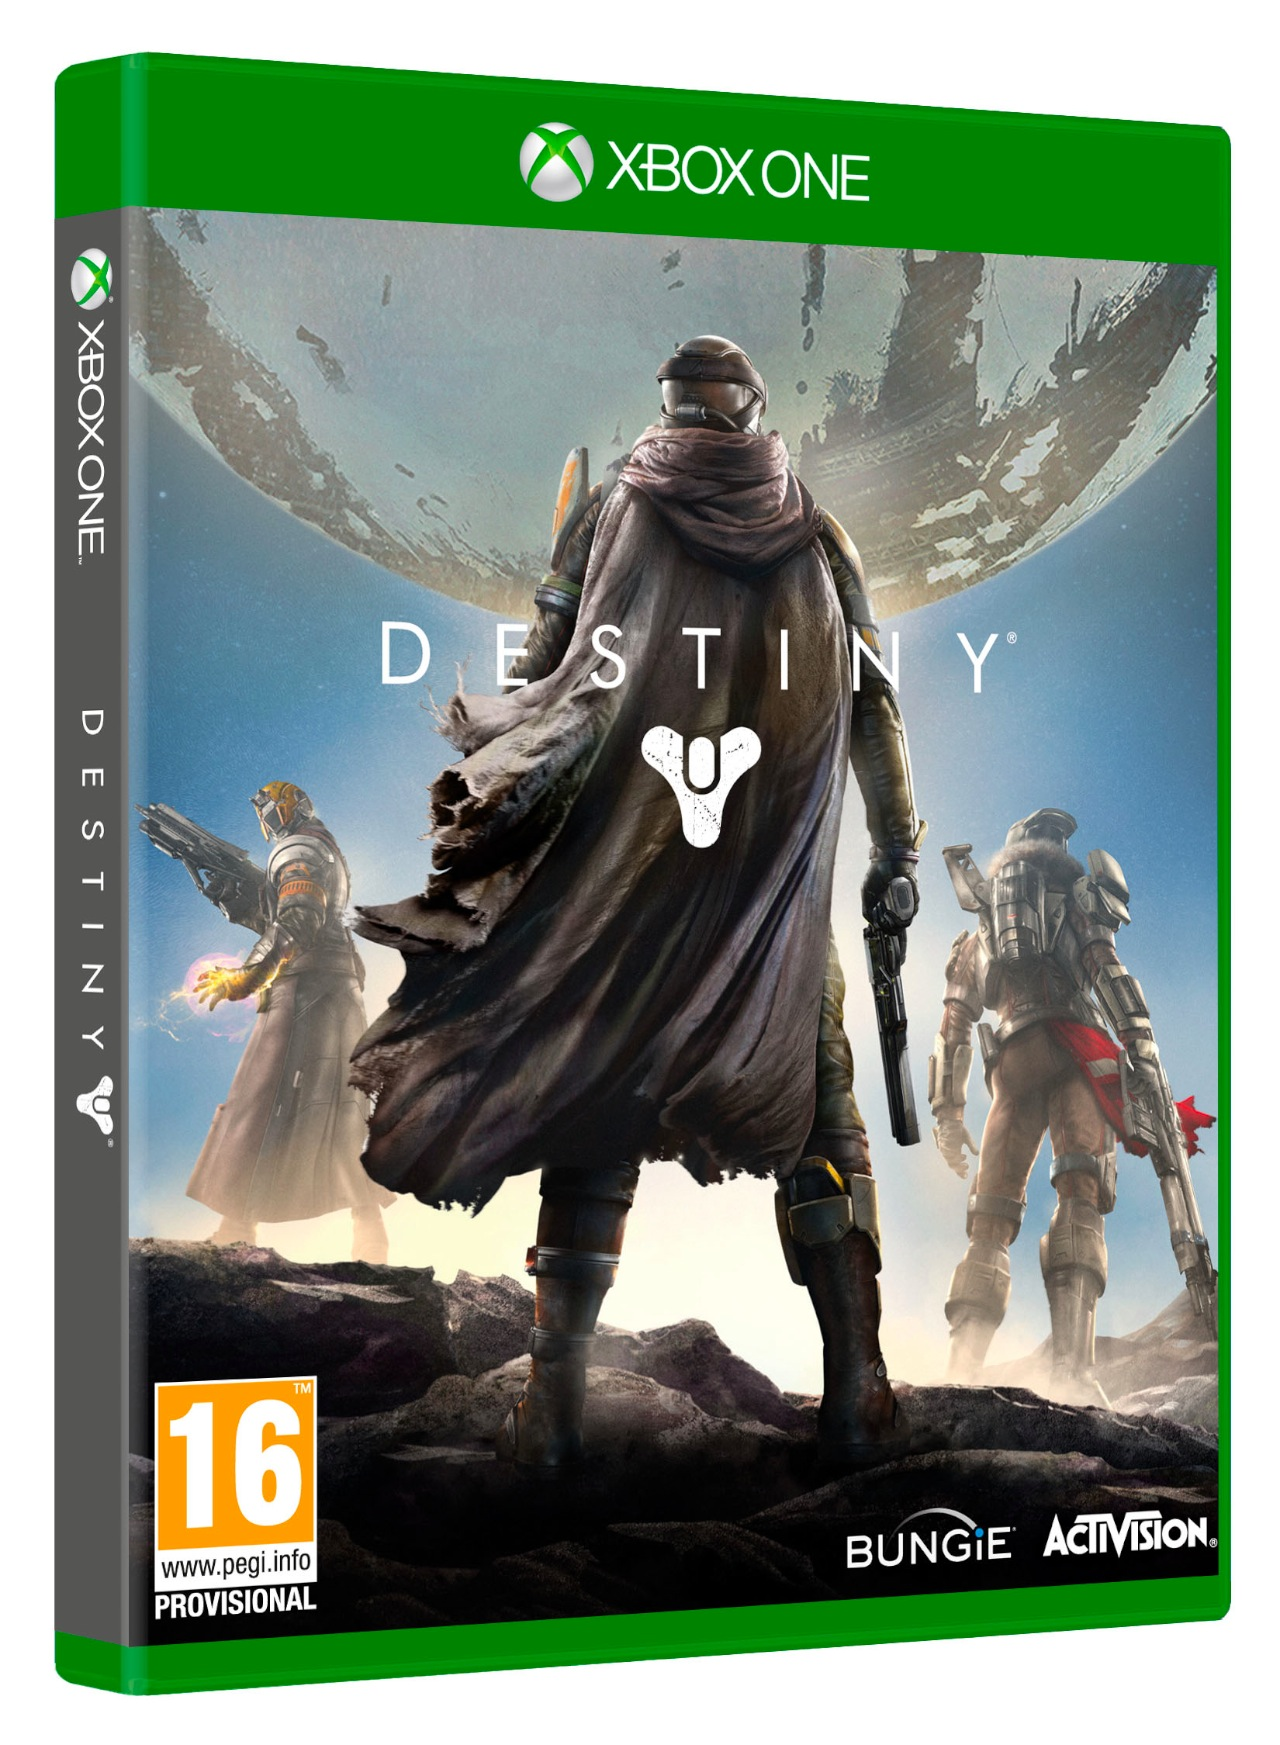 Here's Your Destiny Xbox One Box Art - Xbox One, Xbox 360 ...